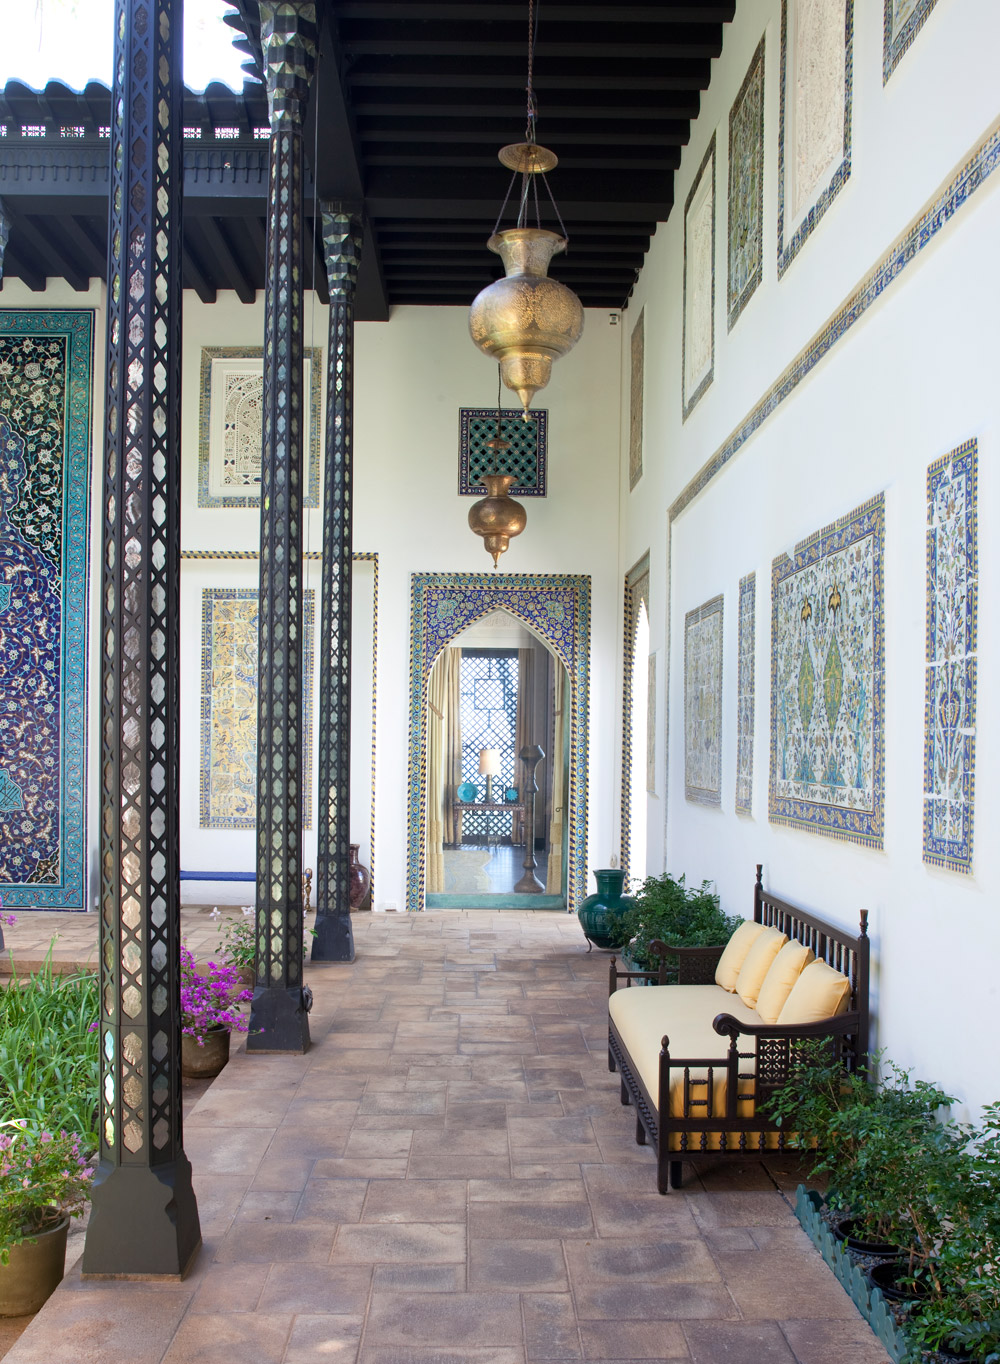 Display of Art in the Central Courtyard